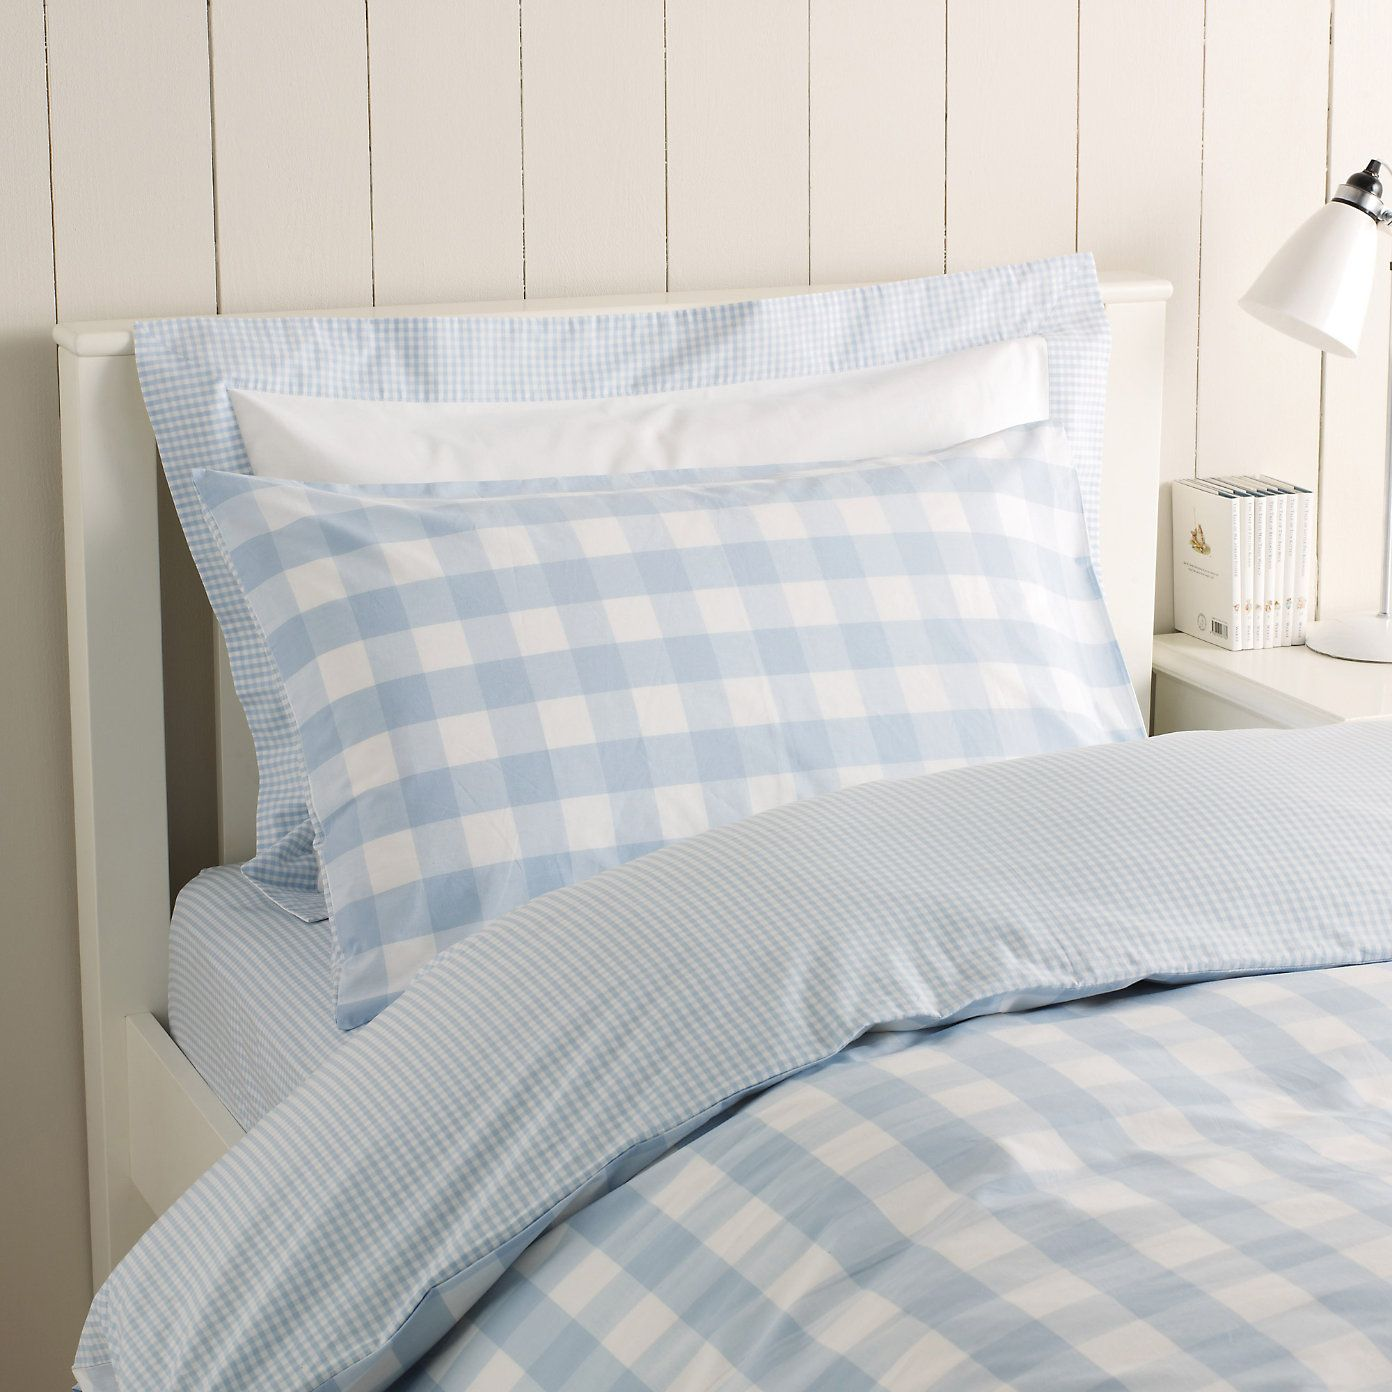 flint pin at co colourmatch set jet a buy grey black where duvet bedding double argos to